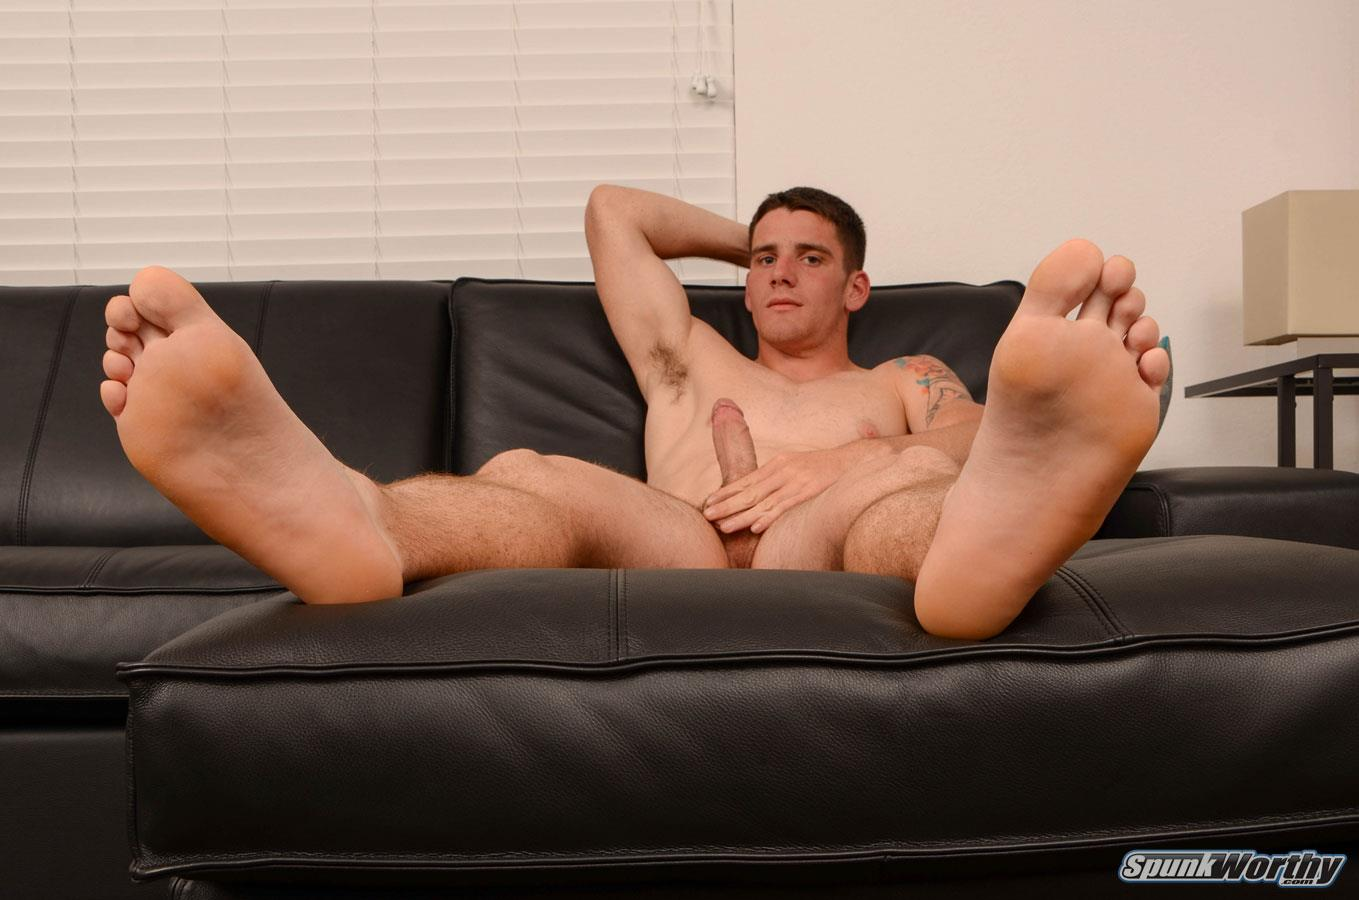 SpunkWorthy Dale Naked Football Jock Jerking Off His Big Cock Amateur Gay Porn 12 Straight Football Jock Jerks His Big Cock And Shows Off His Hairy Hole